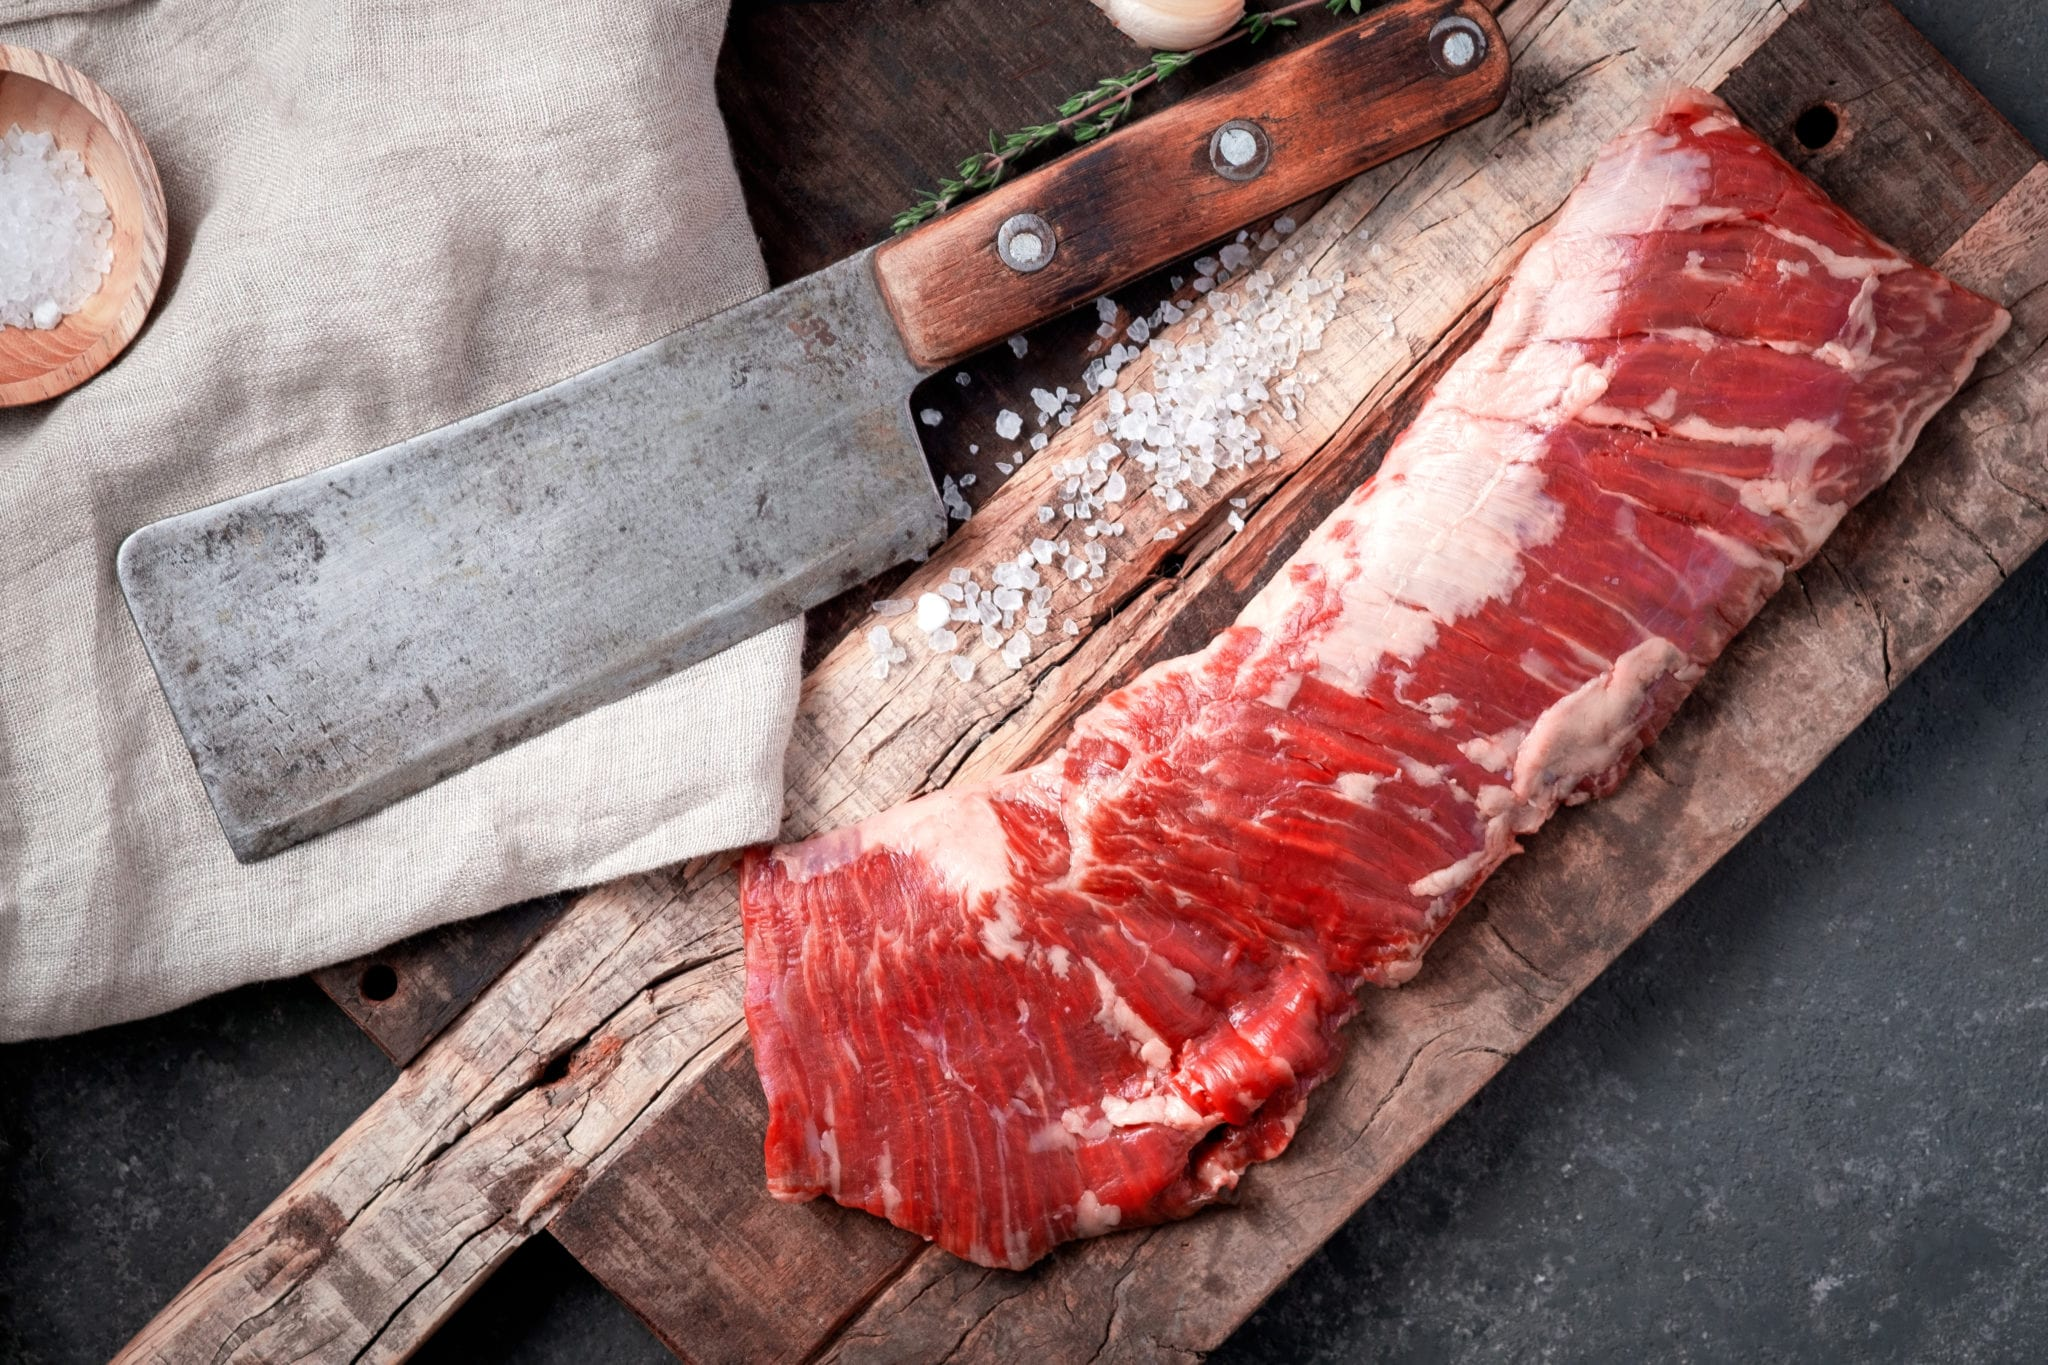 Raw,Beef,Machete,Steak,With,Meat,Axe,On,A,Wooden